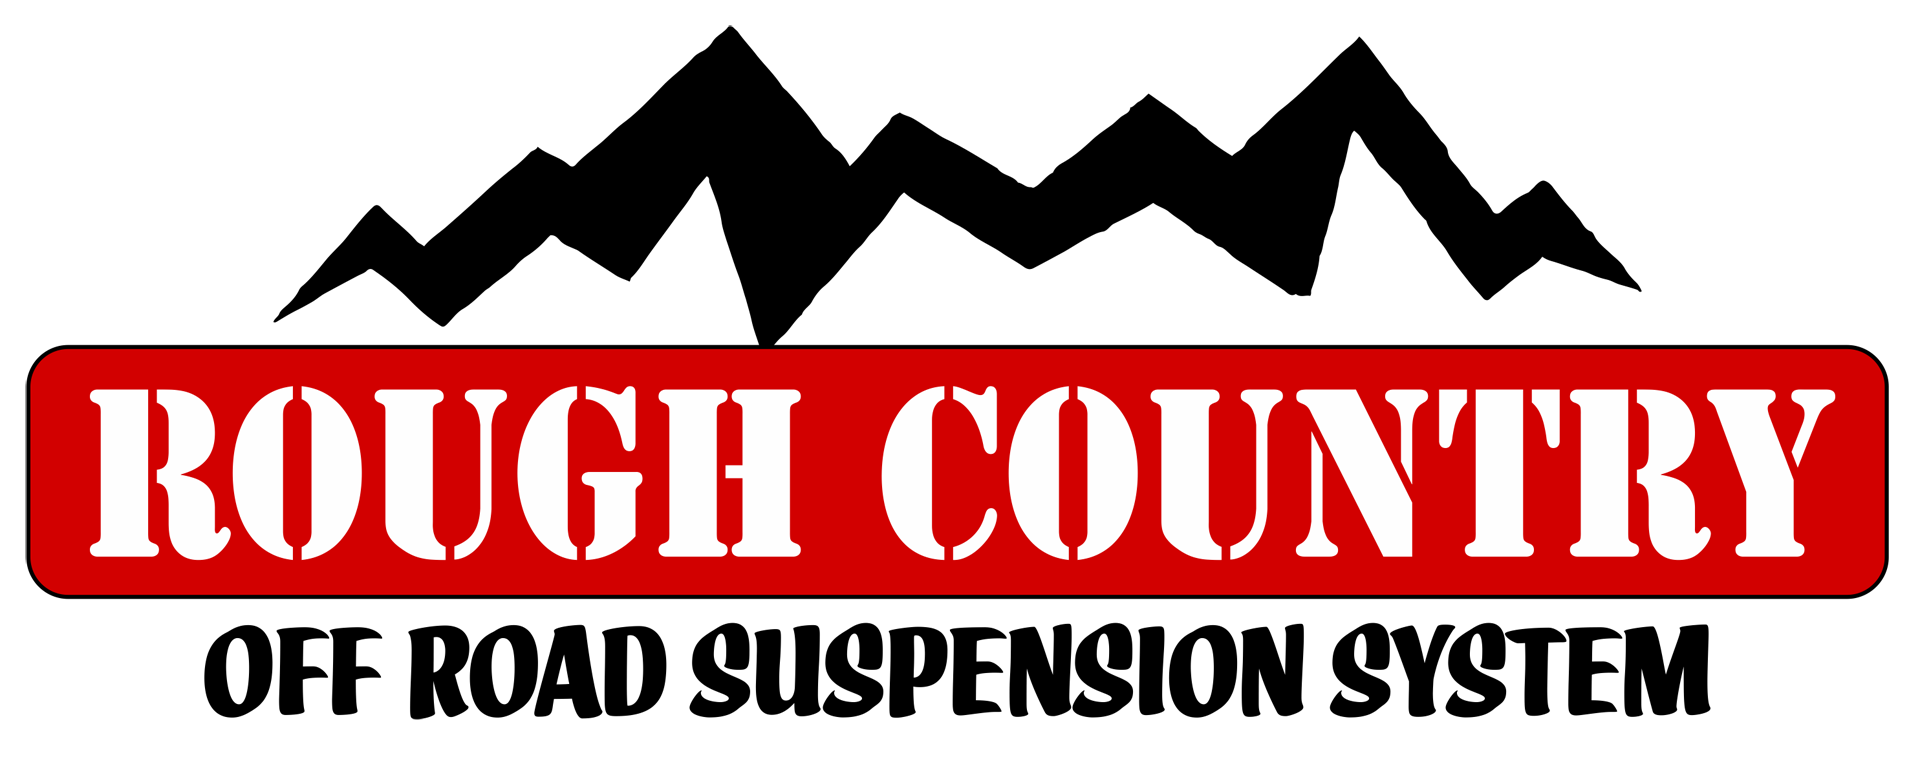 Rough country logo png. Logos caskinette ford new